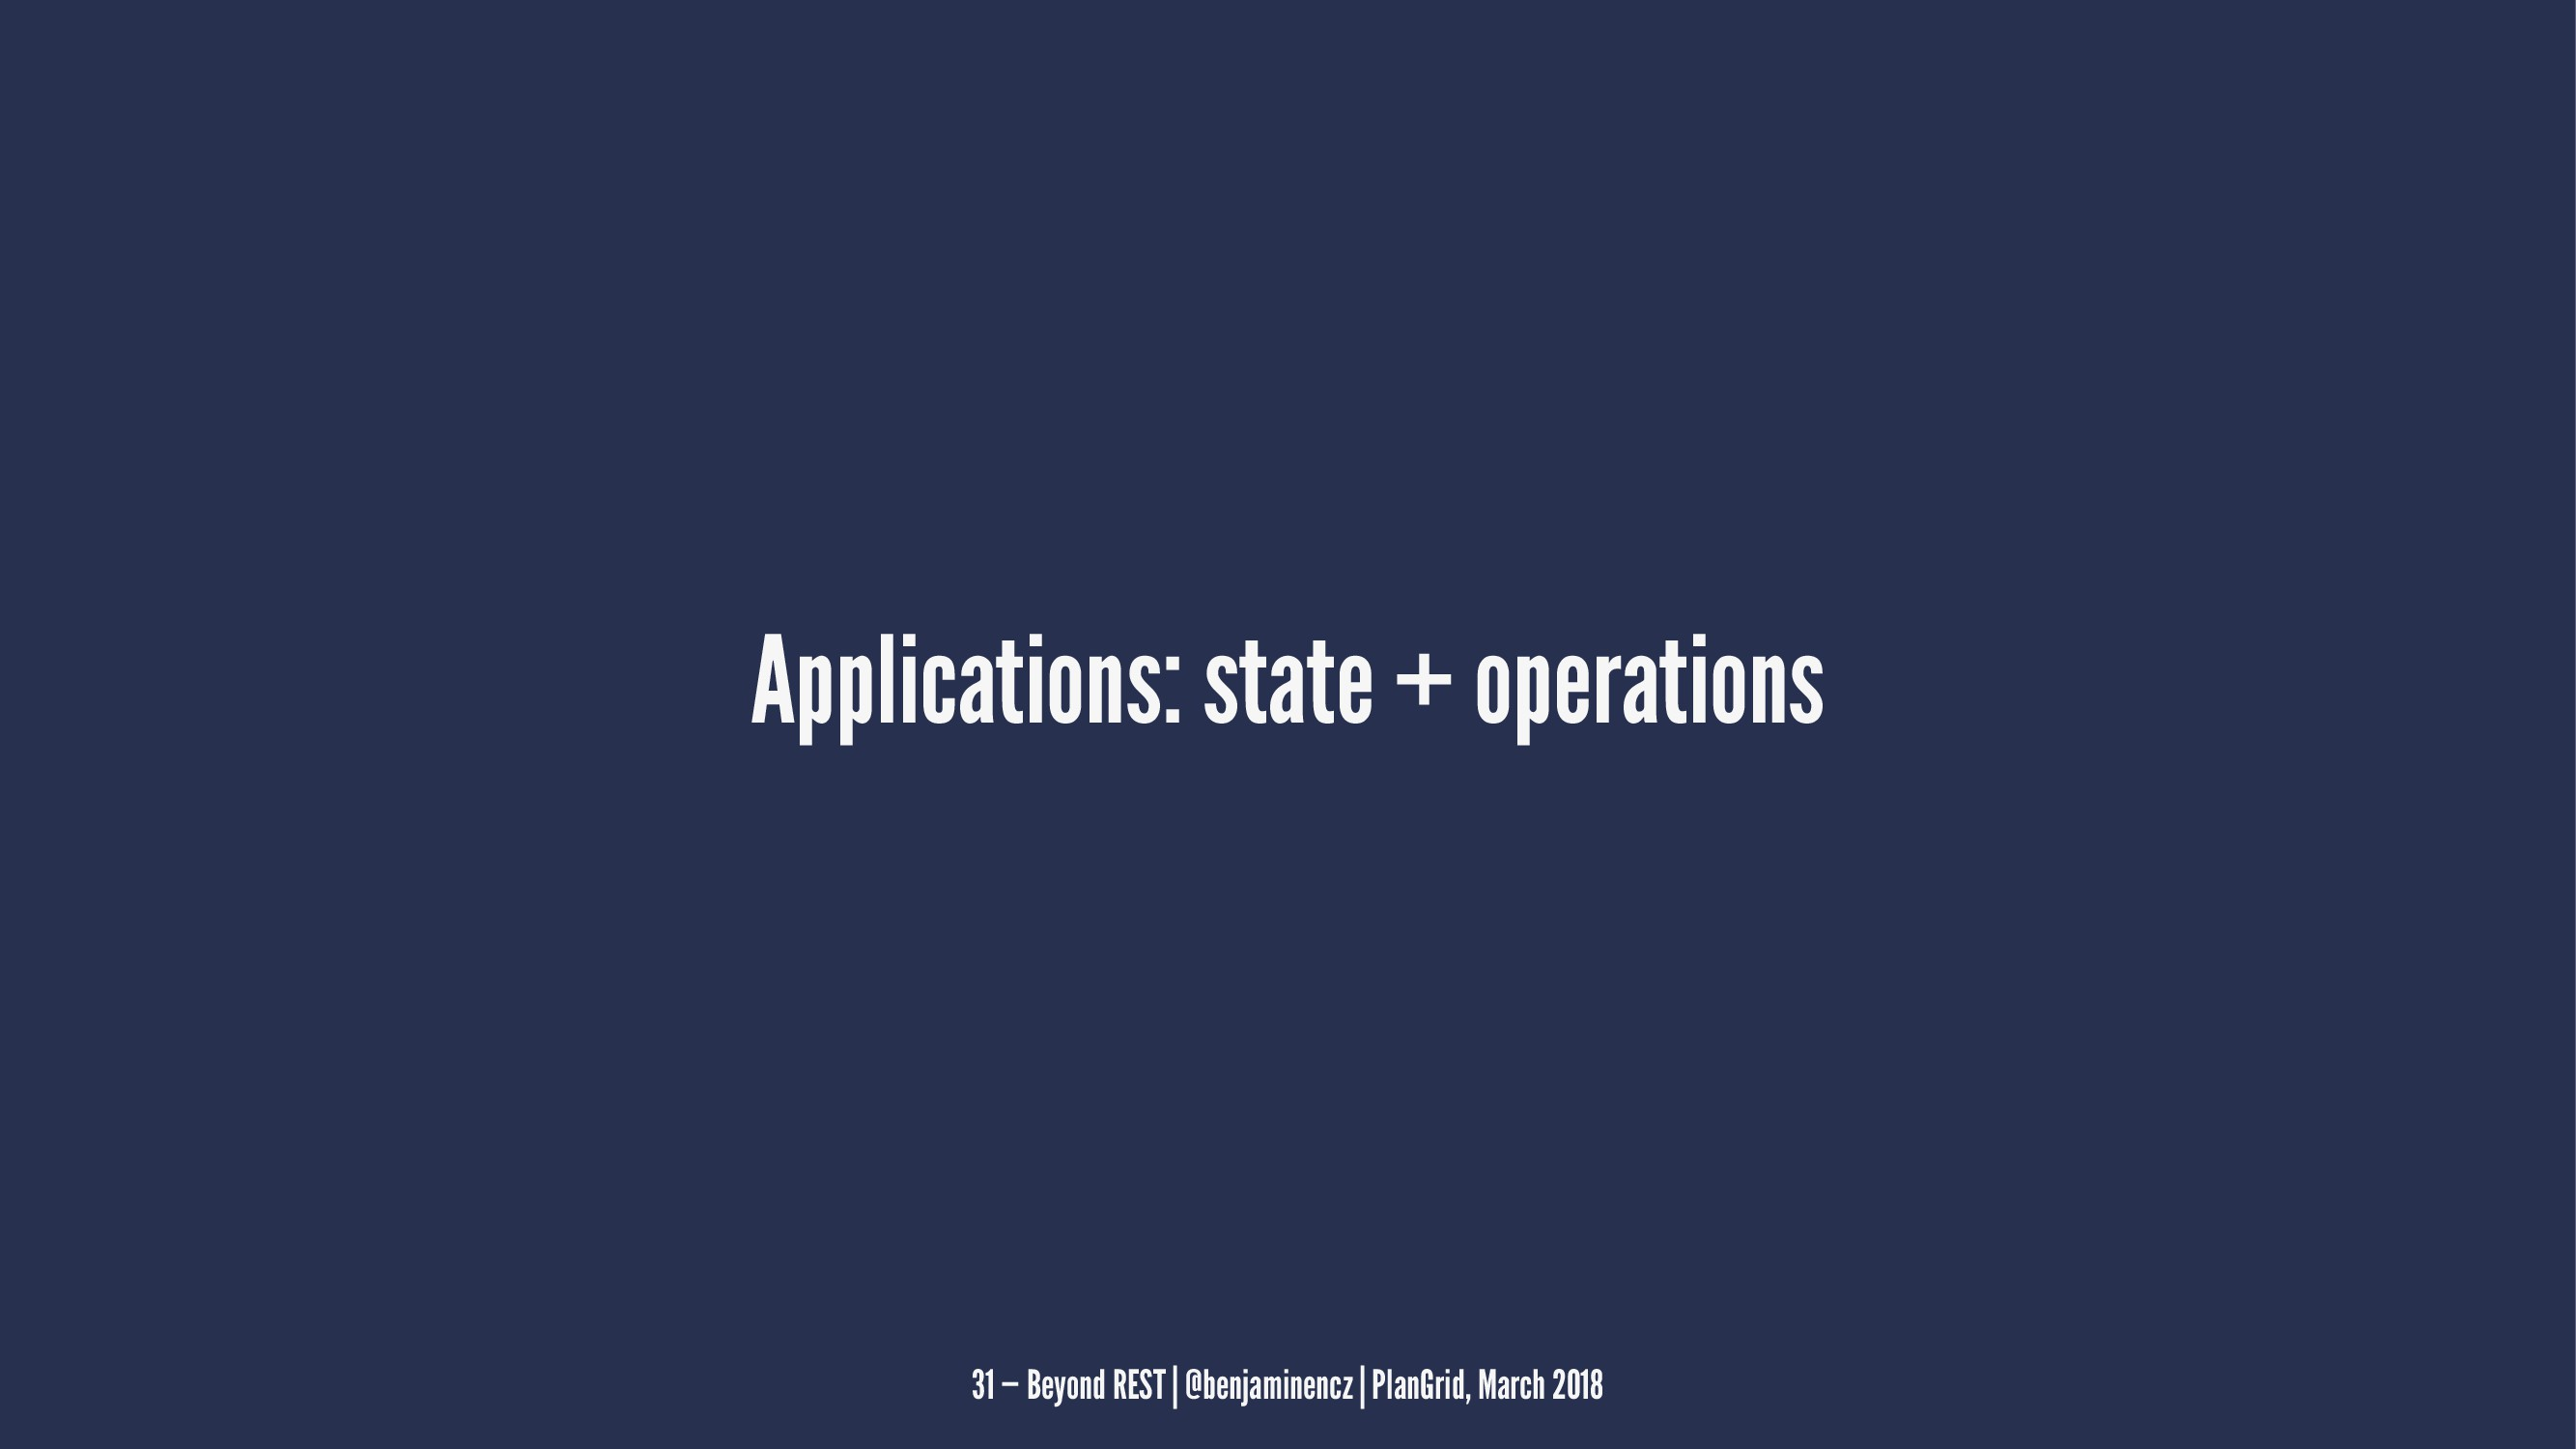 Applications: state + operations 31 — Beyond RE...